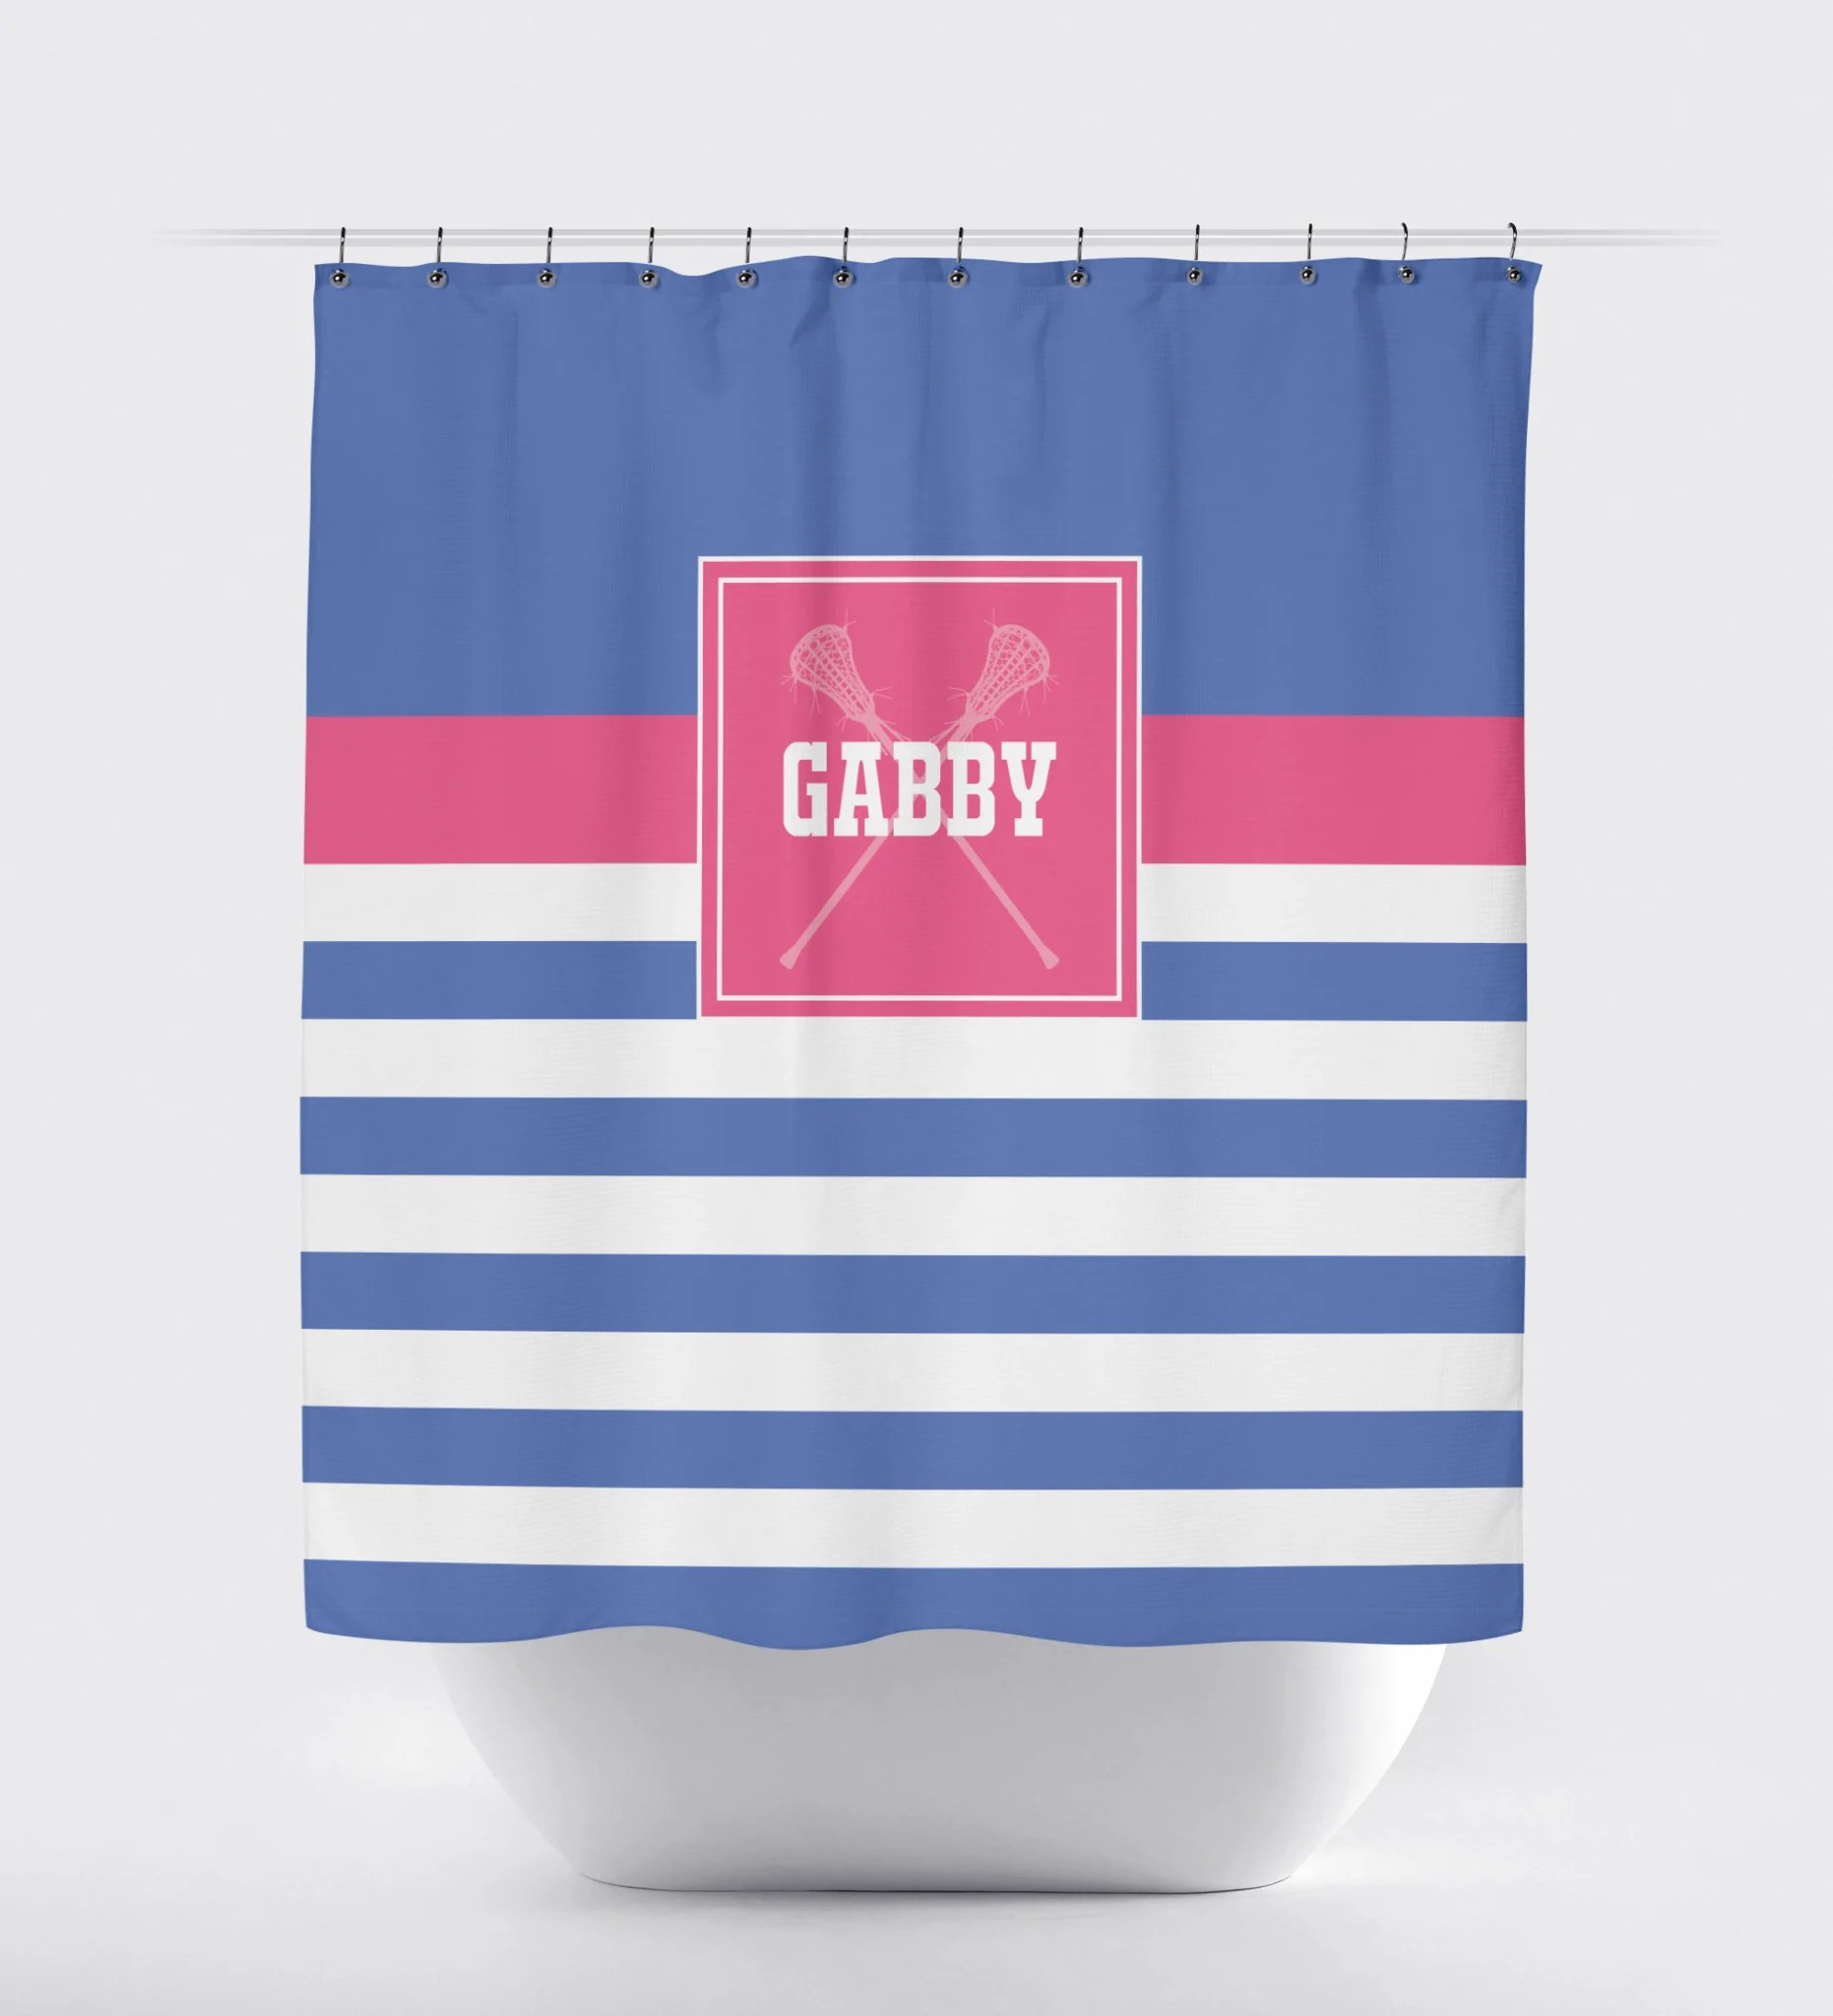 Lacrosse Striped Shower Curtain Girls Lax Sticks Navy Blue Hot Pink And White Choose Any Colors